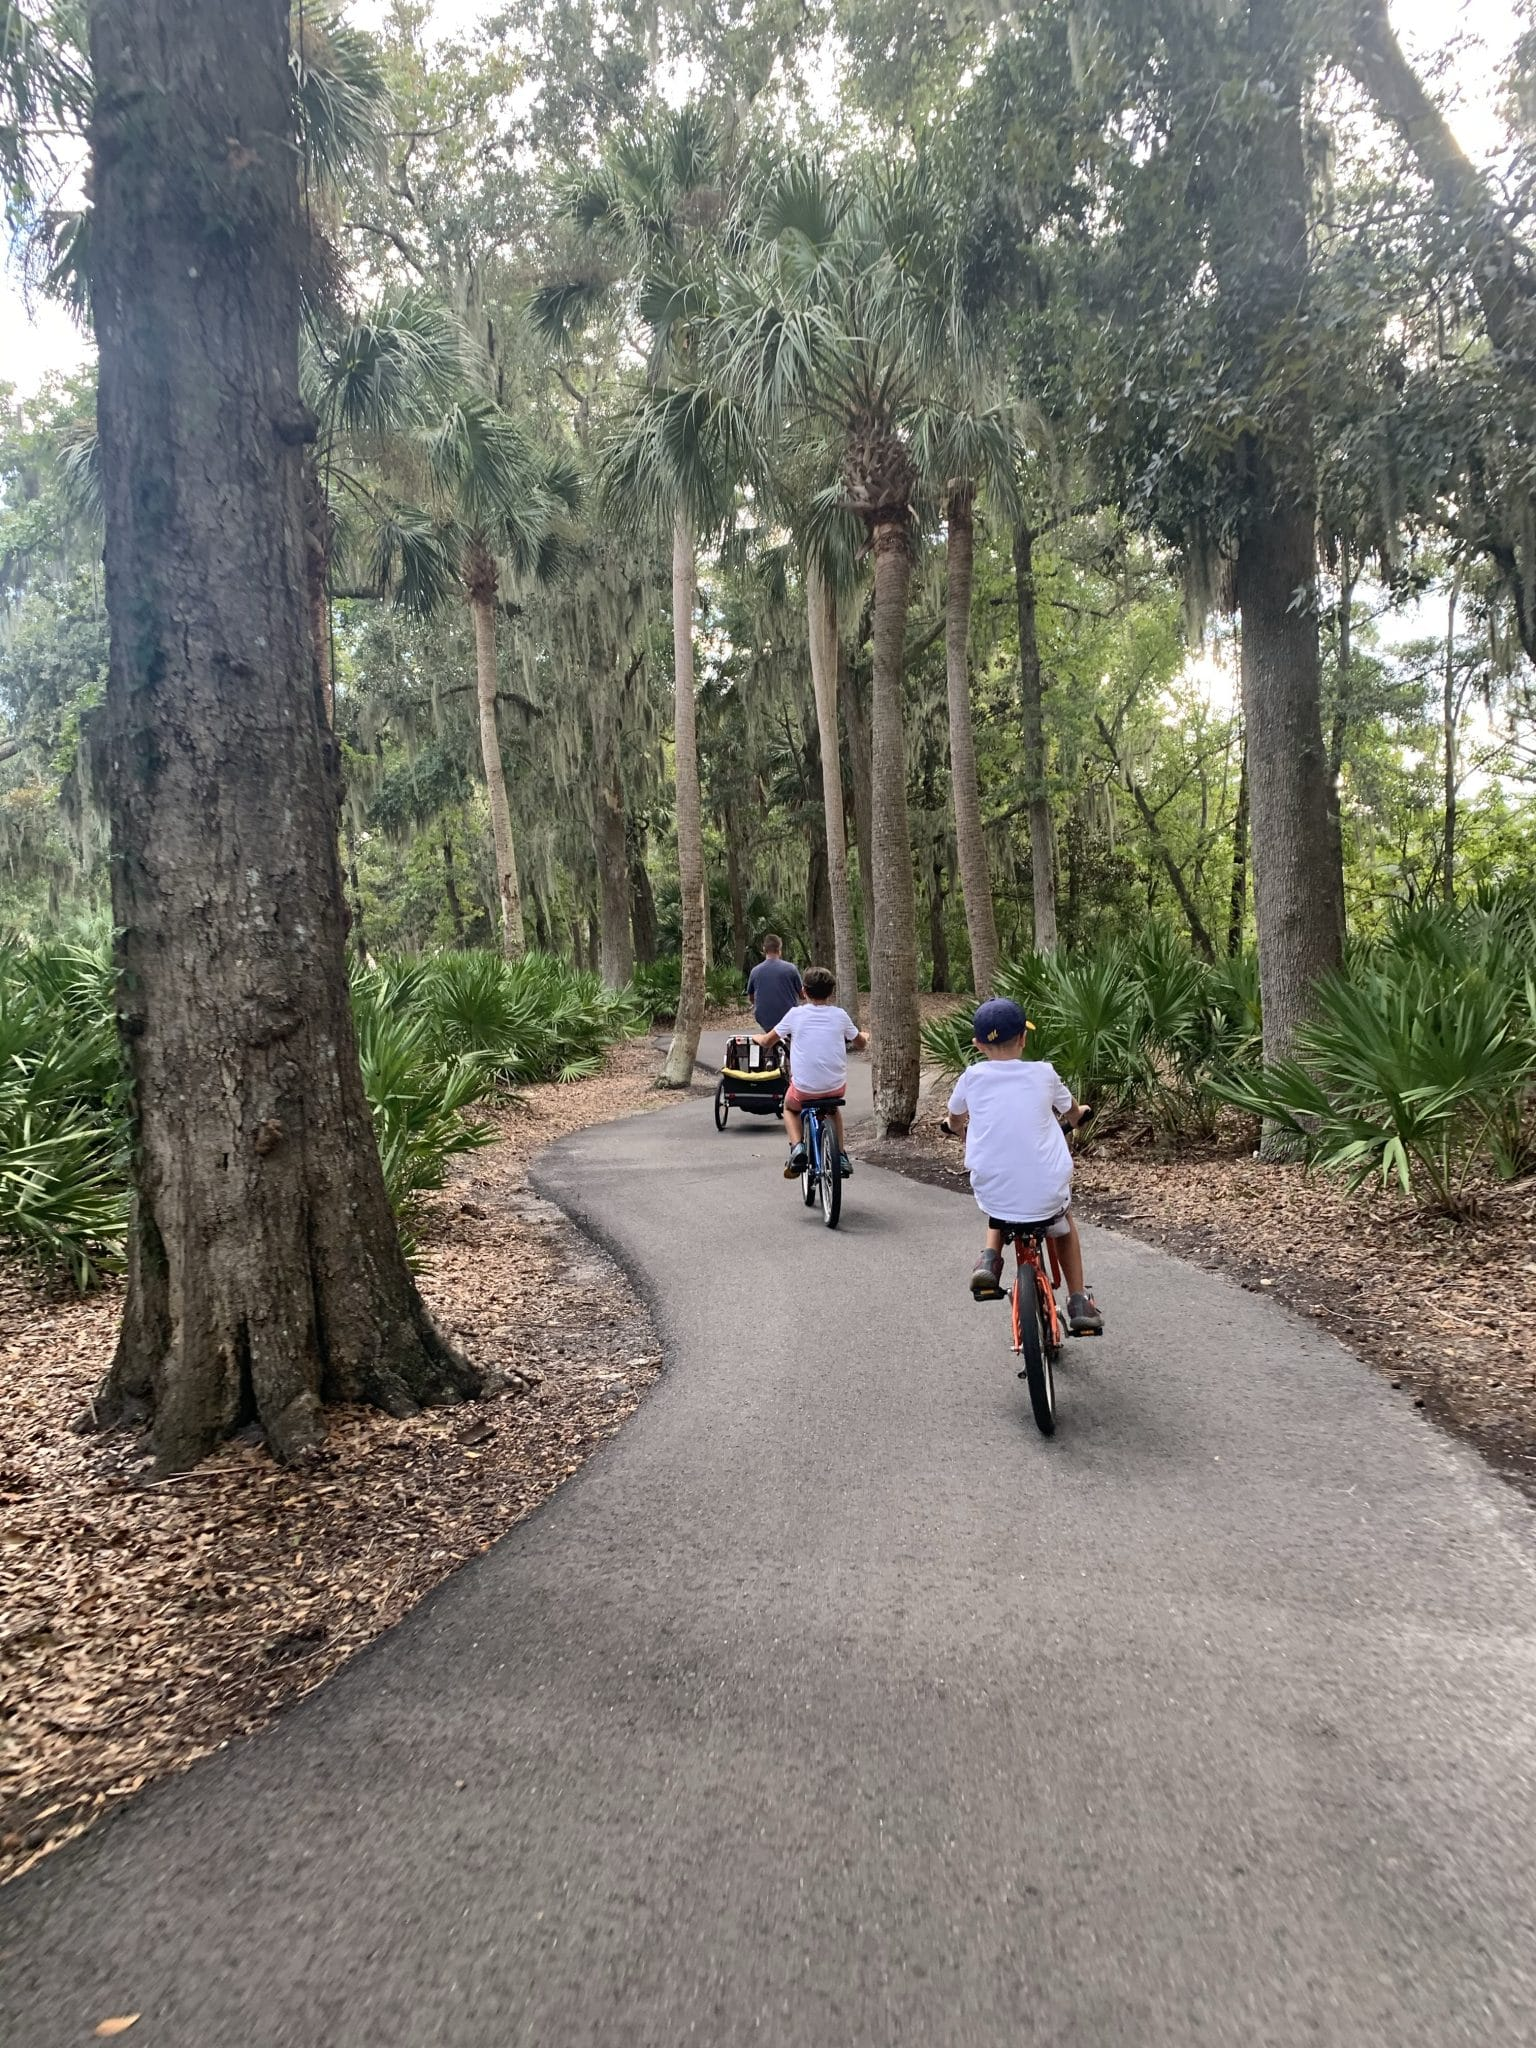 Bike riding Hilton Head Island, Family Biking, Beach Bike riding HHI, Stilettos and Diapers